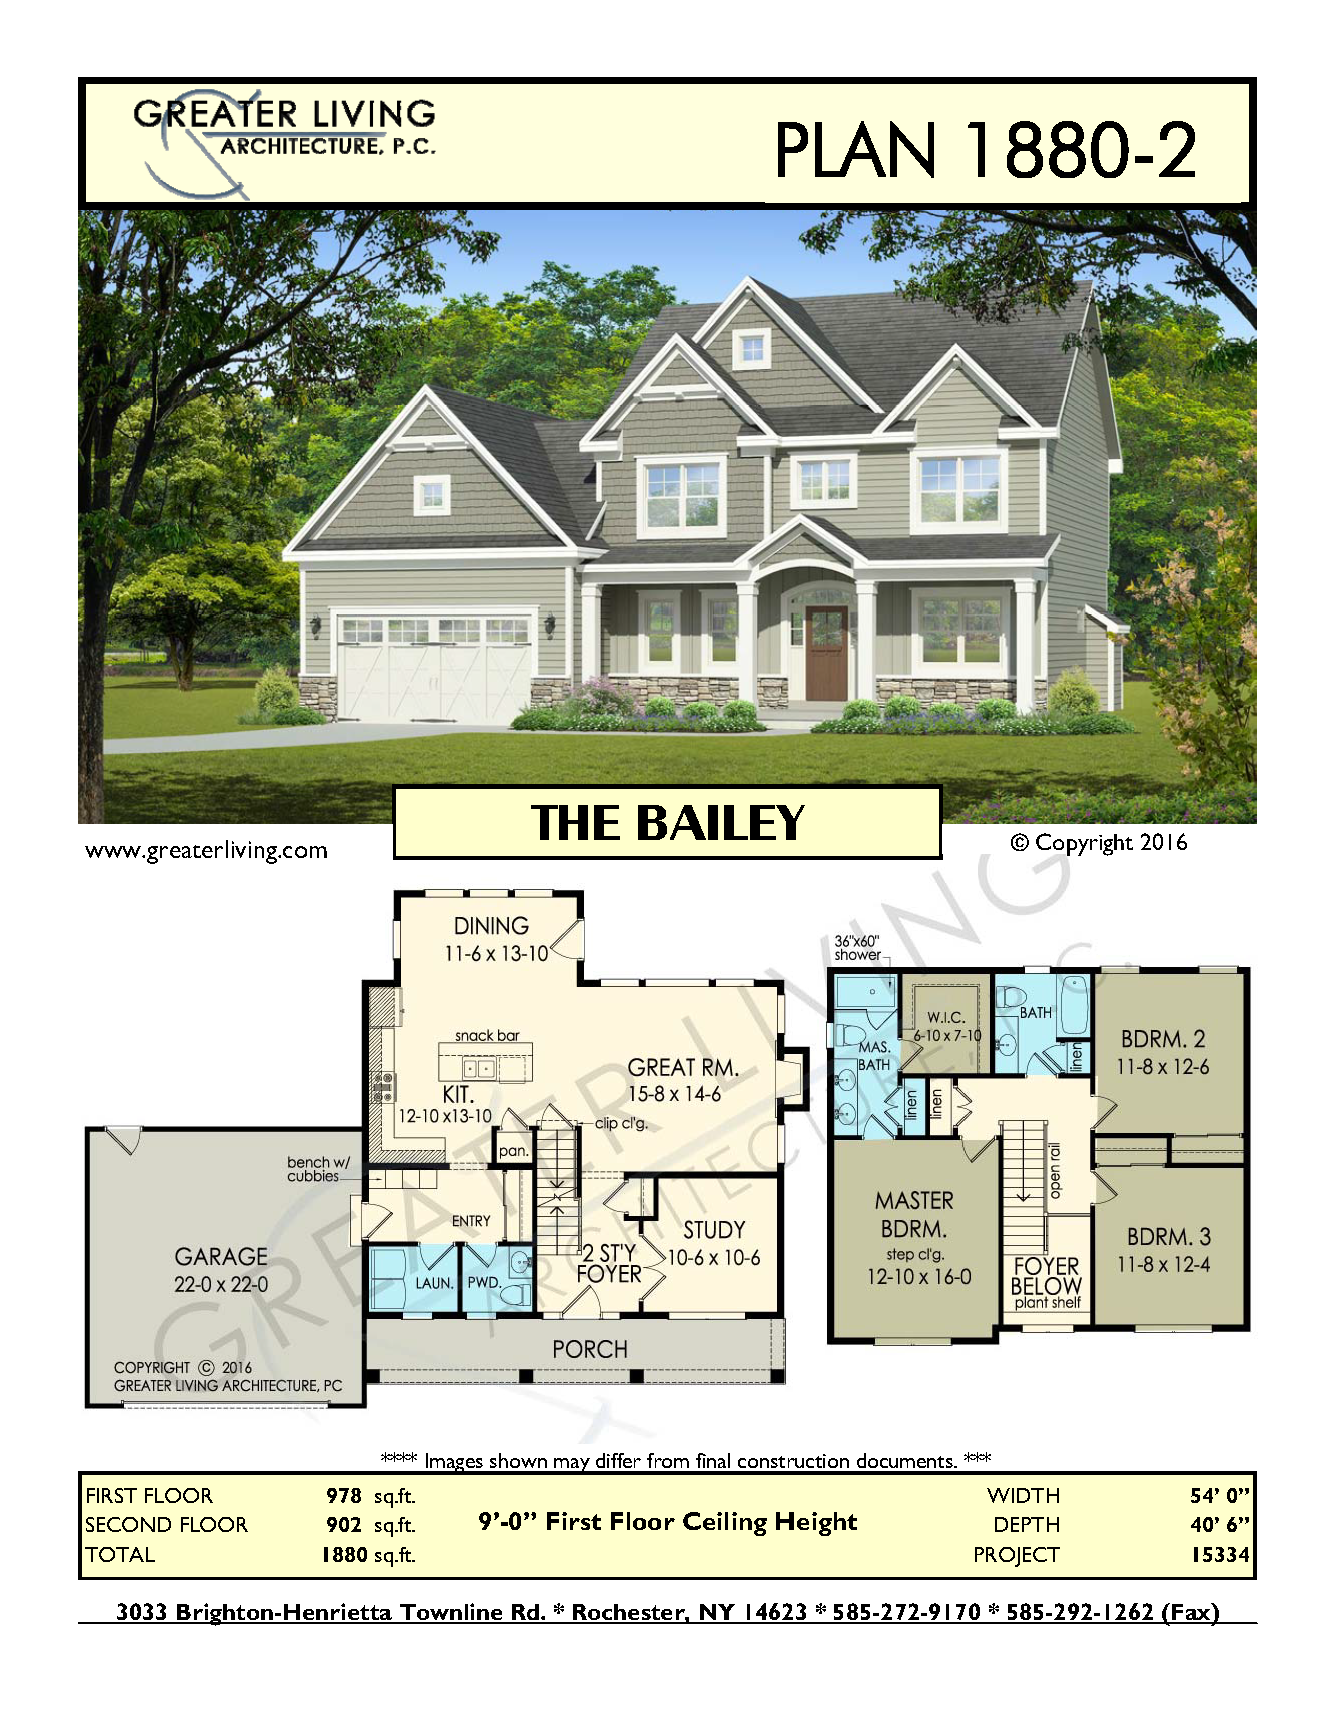 e5d8b02258a1b470c6d73627144646a0 Starter Homes Floor Plans Bedroom on earthbag house plans, 2 bedroom vacation home plans, 2 bedroom luxury home plans, 4 bedroom house plans, 2 bedroom starter house, small starter house plans, only 2 bedroom home plans, large one story house plans, country home floor plans, country cottage floor plans, angled home plans, starter home floor plans, small two bedroom house plans, 1 bedroom house floor plans, cute 2 bedroom home plans,